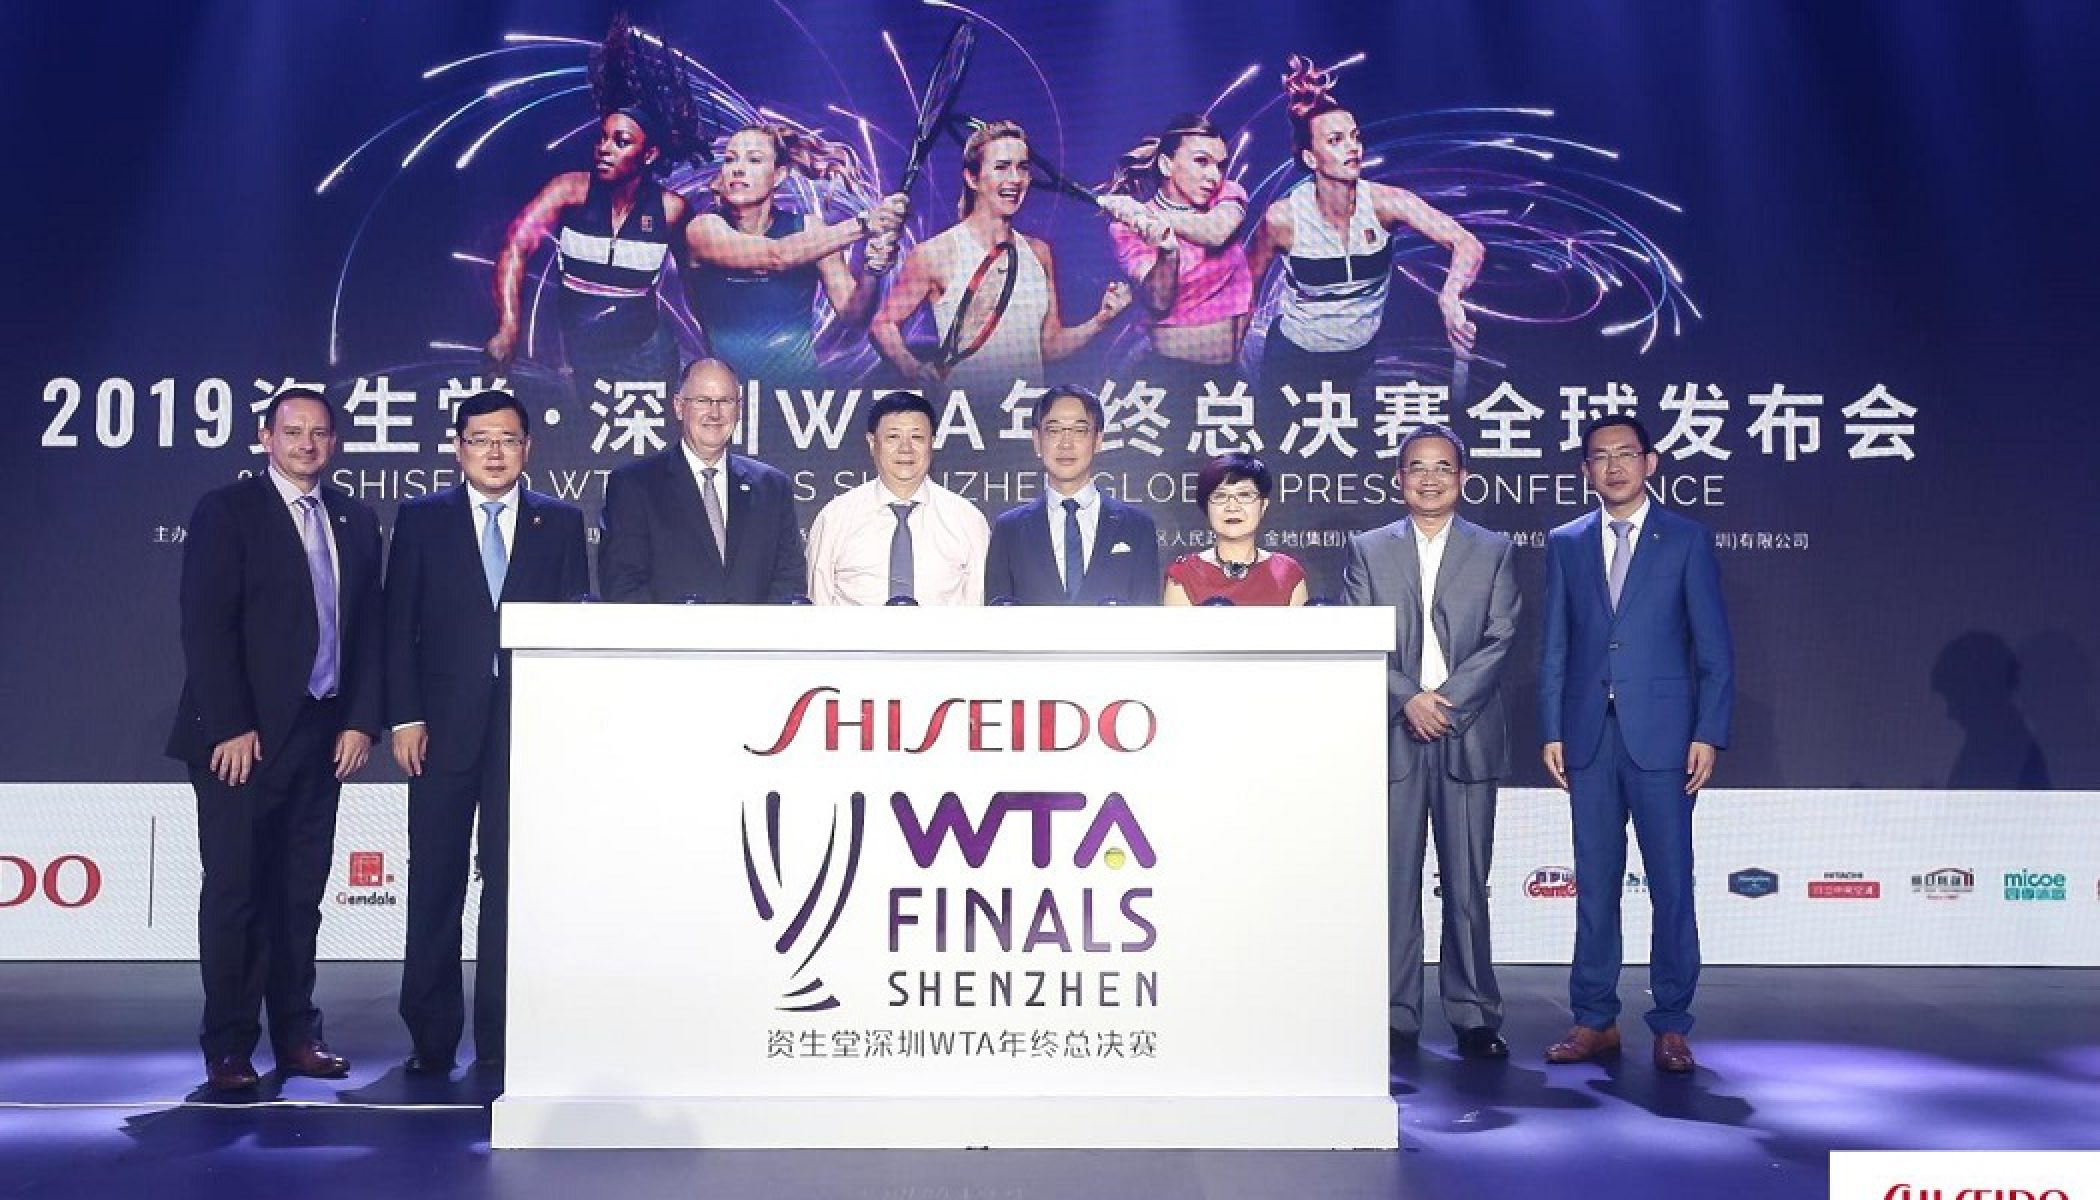 WTA Names Shiseido As Title Sponsor Of The WTA Finals Shenzhen